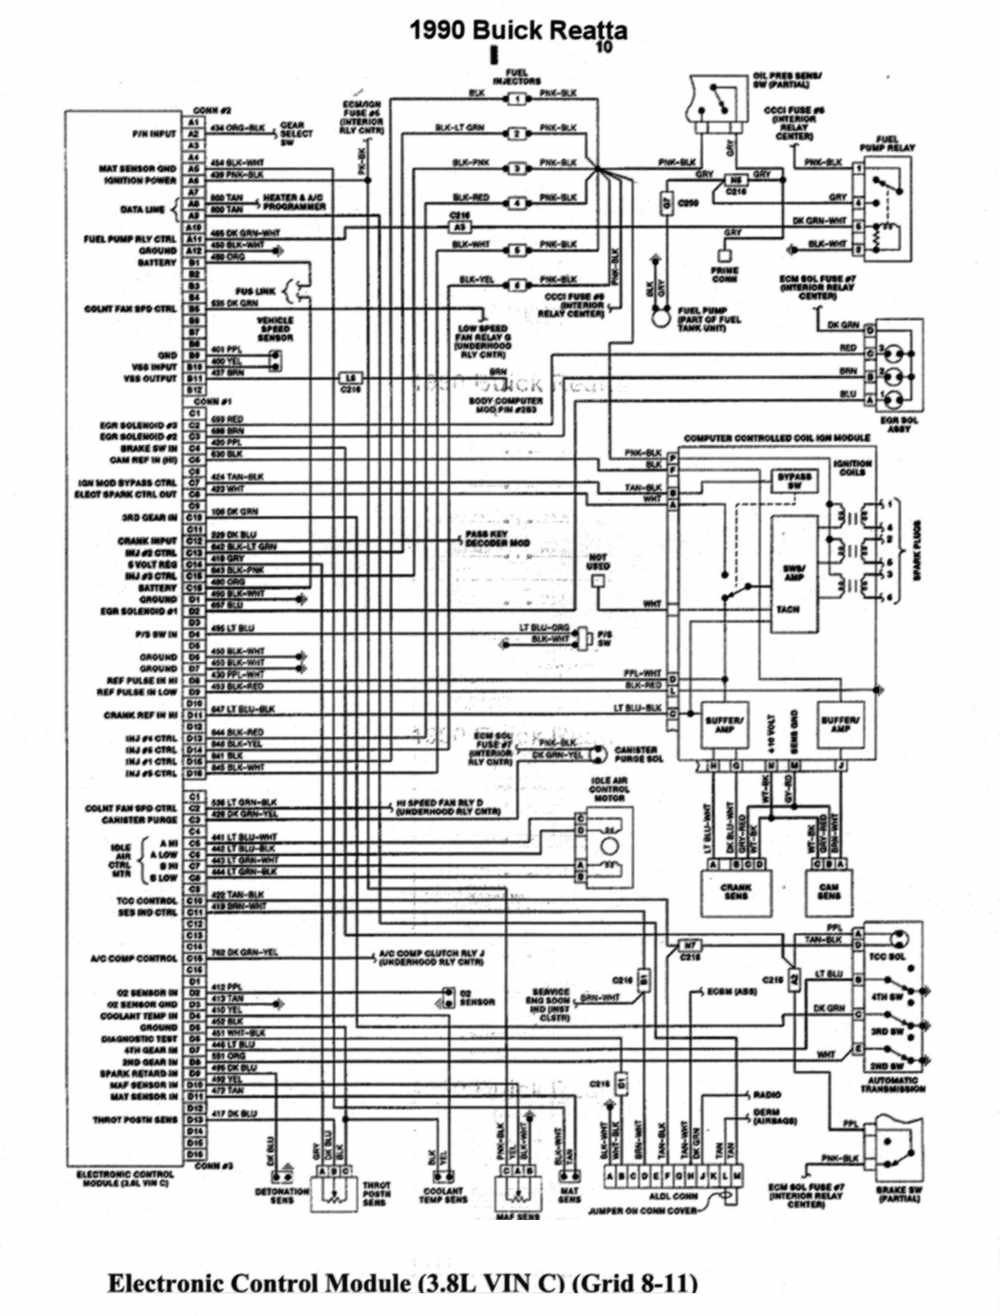 1953 buick wiring diagram 1953 wiring diagrams online 1953 buick wiring diagram 1953 wiring diagrams